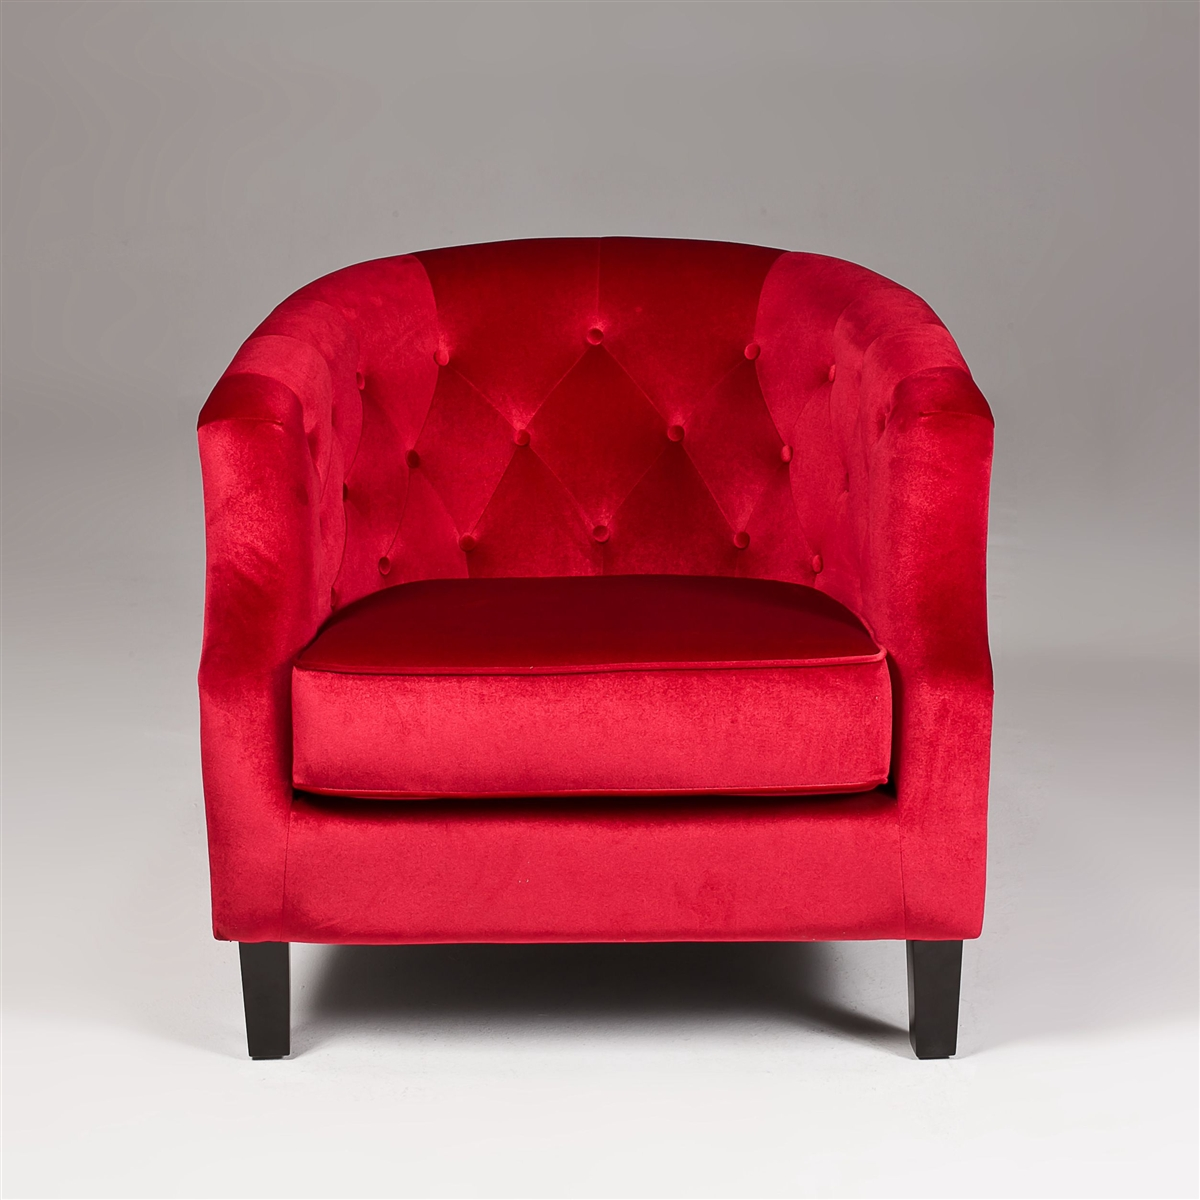 Stupendous On Sale Seriena Vienna Red Velvet Accent Chair Tufted Back Barrel Curved Back Ncnpc Chair Design For Home Ncnpcorg